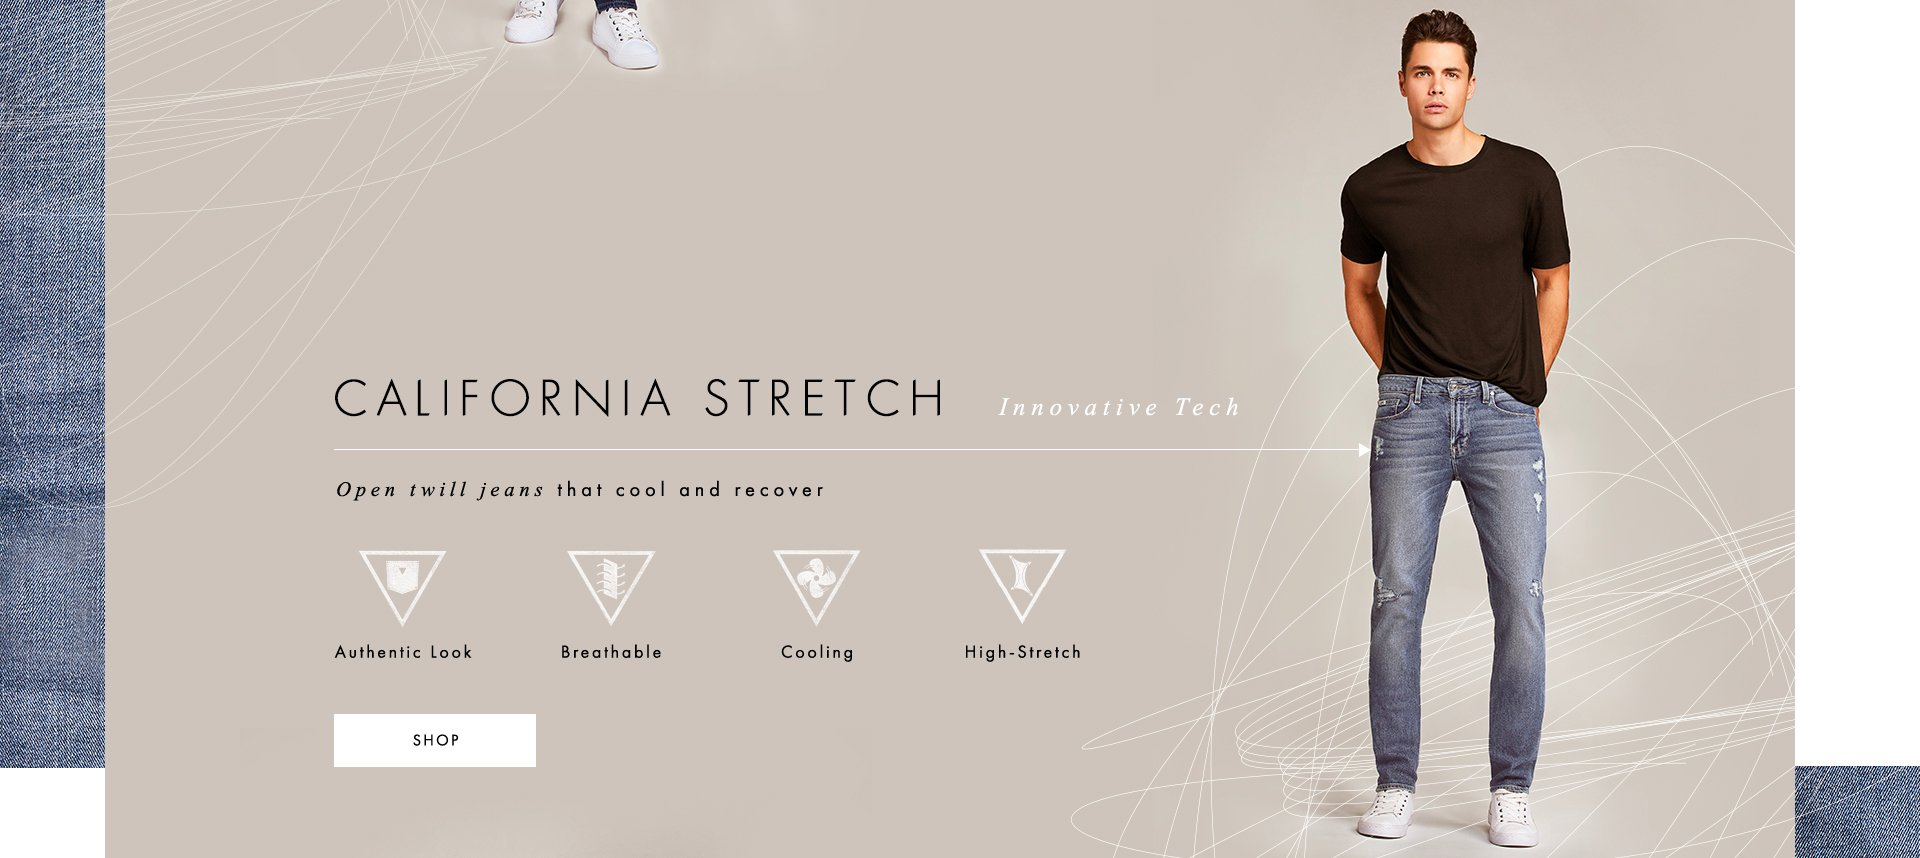 California Stretch Innovative Tech